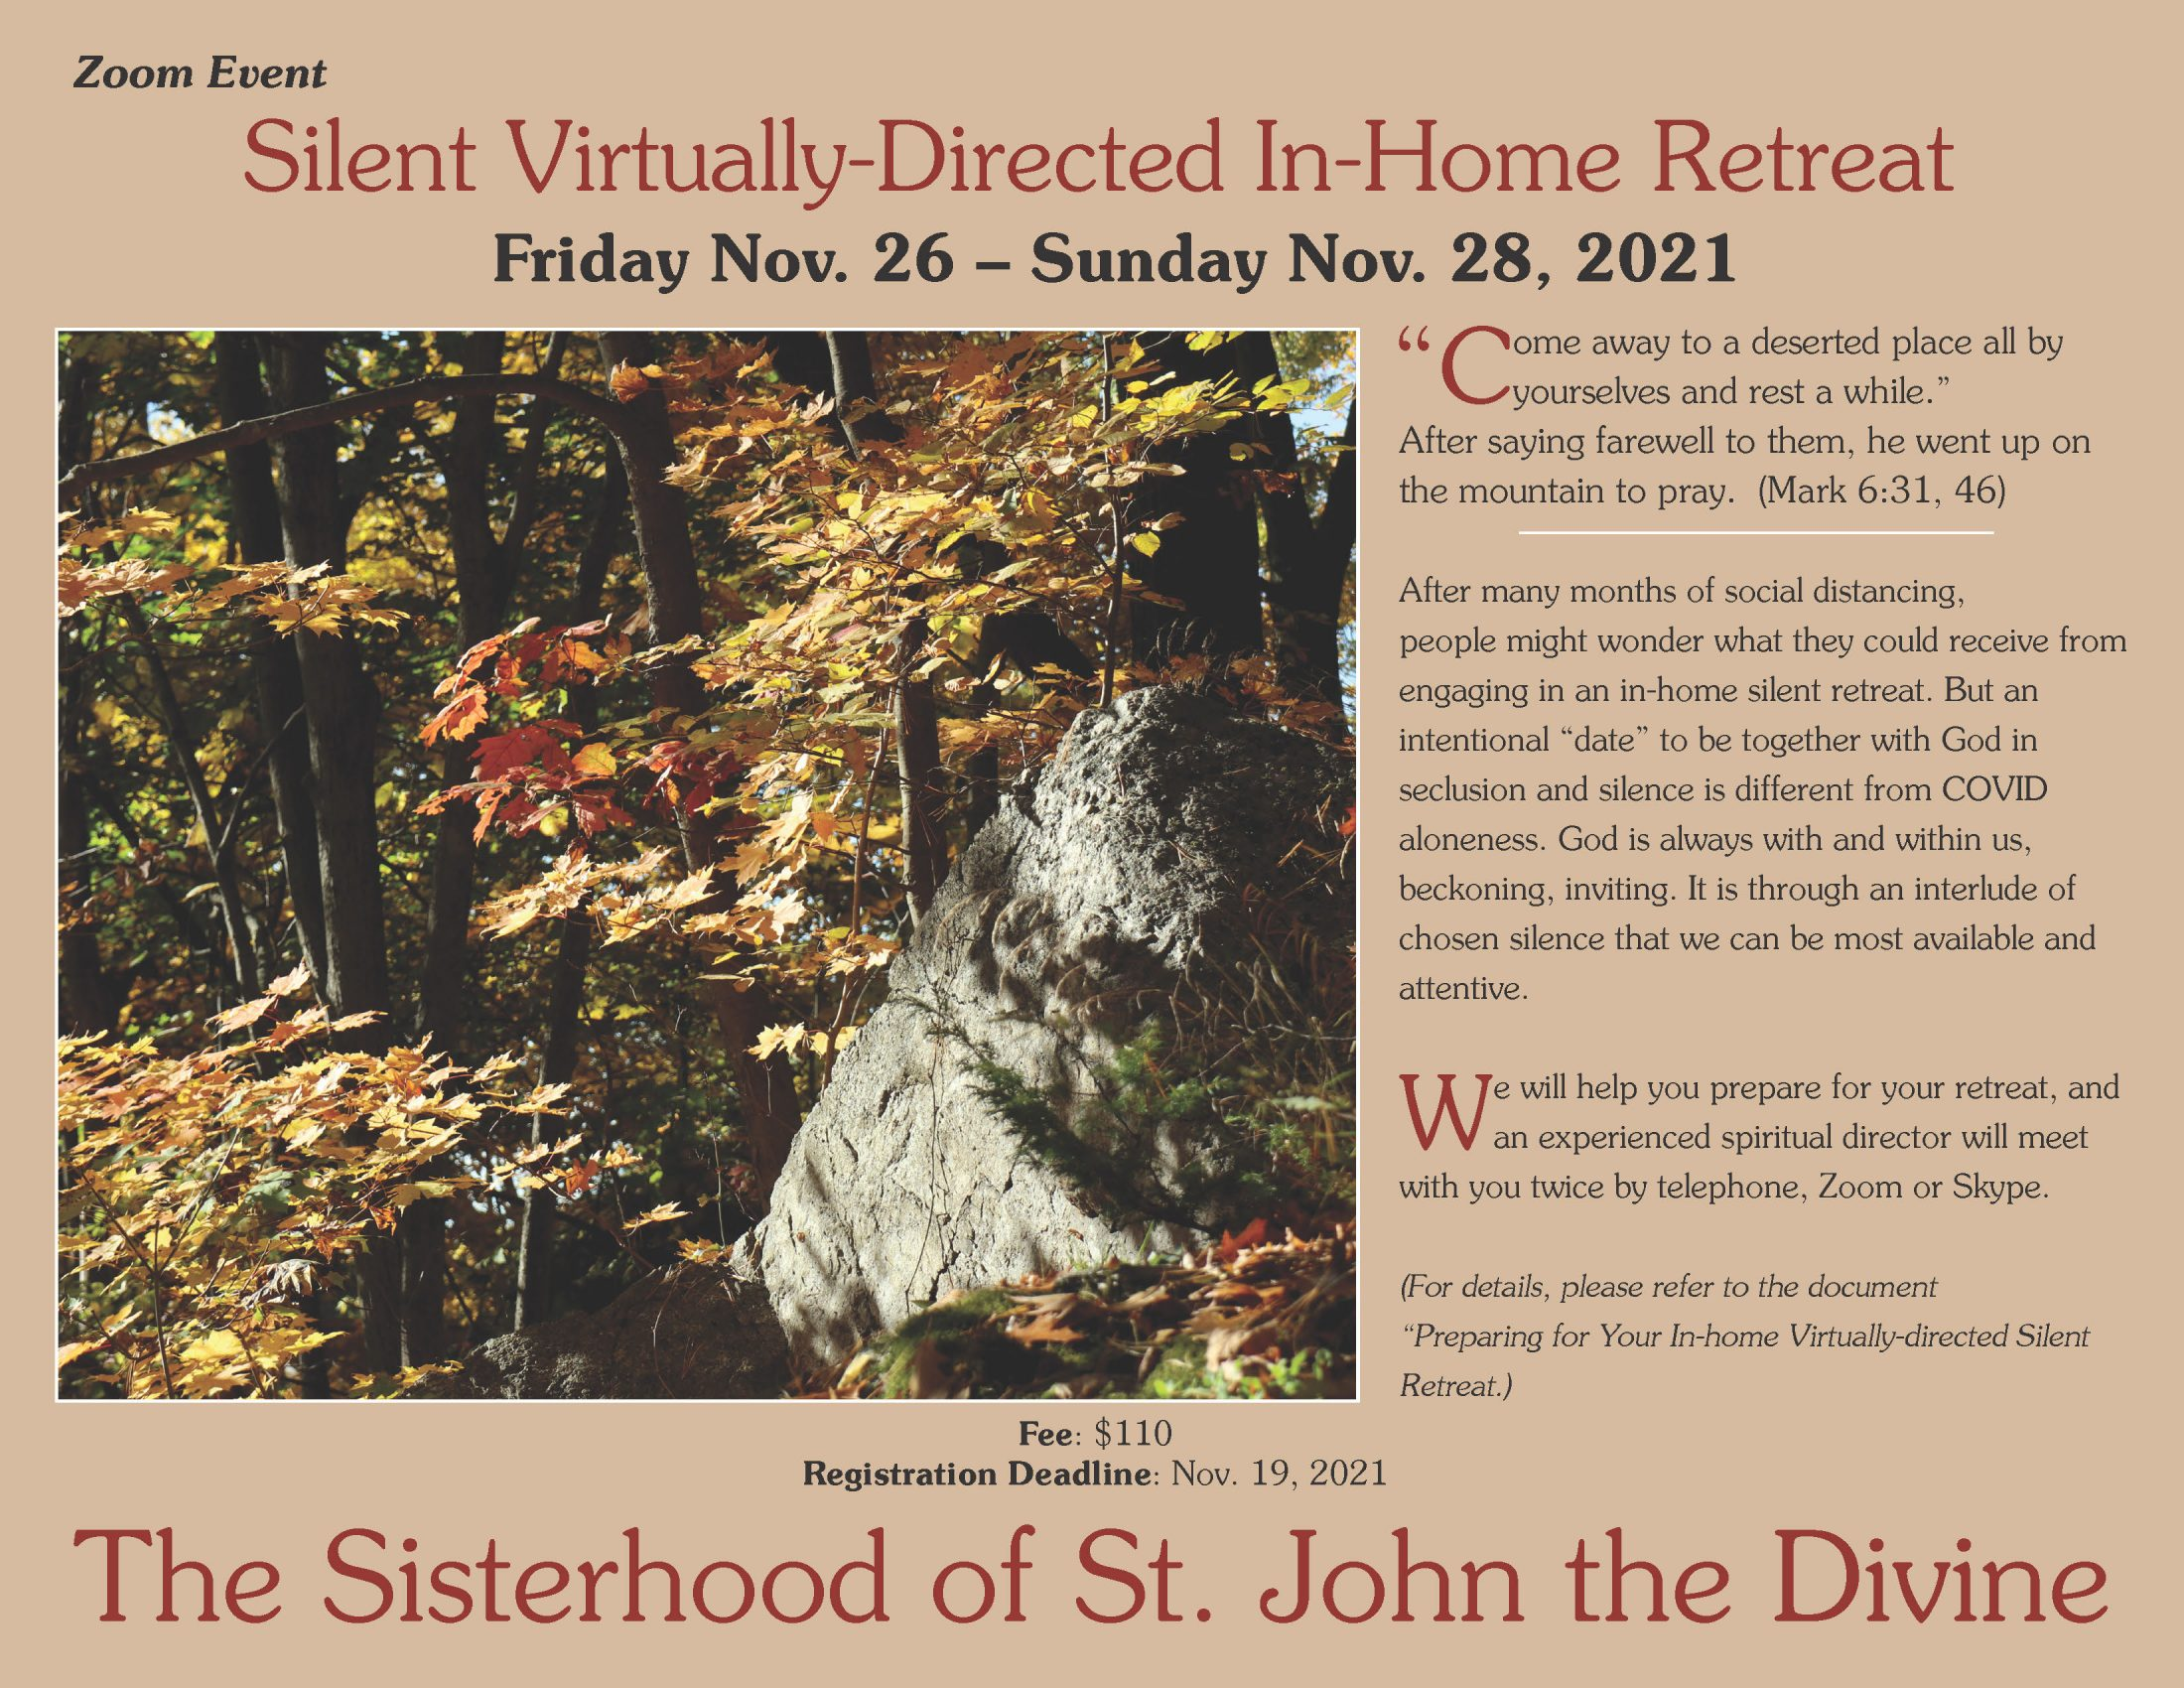 Silent Virtually-Directed In-Home Retreat